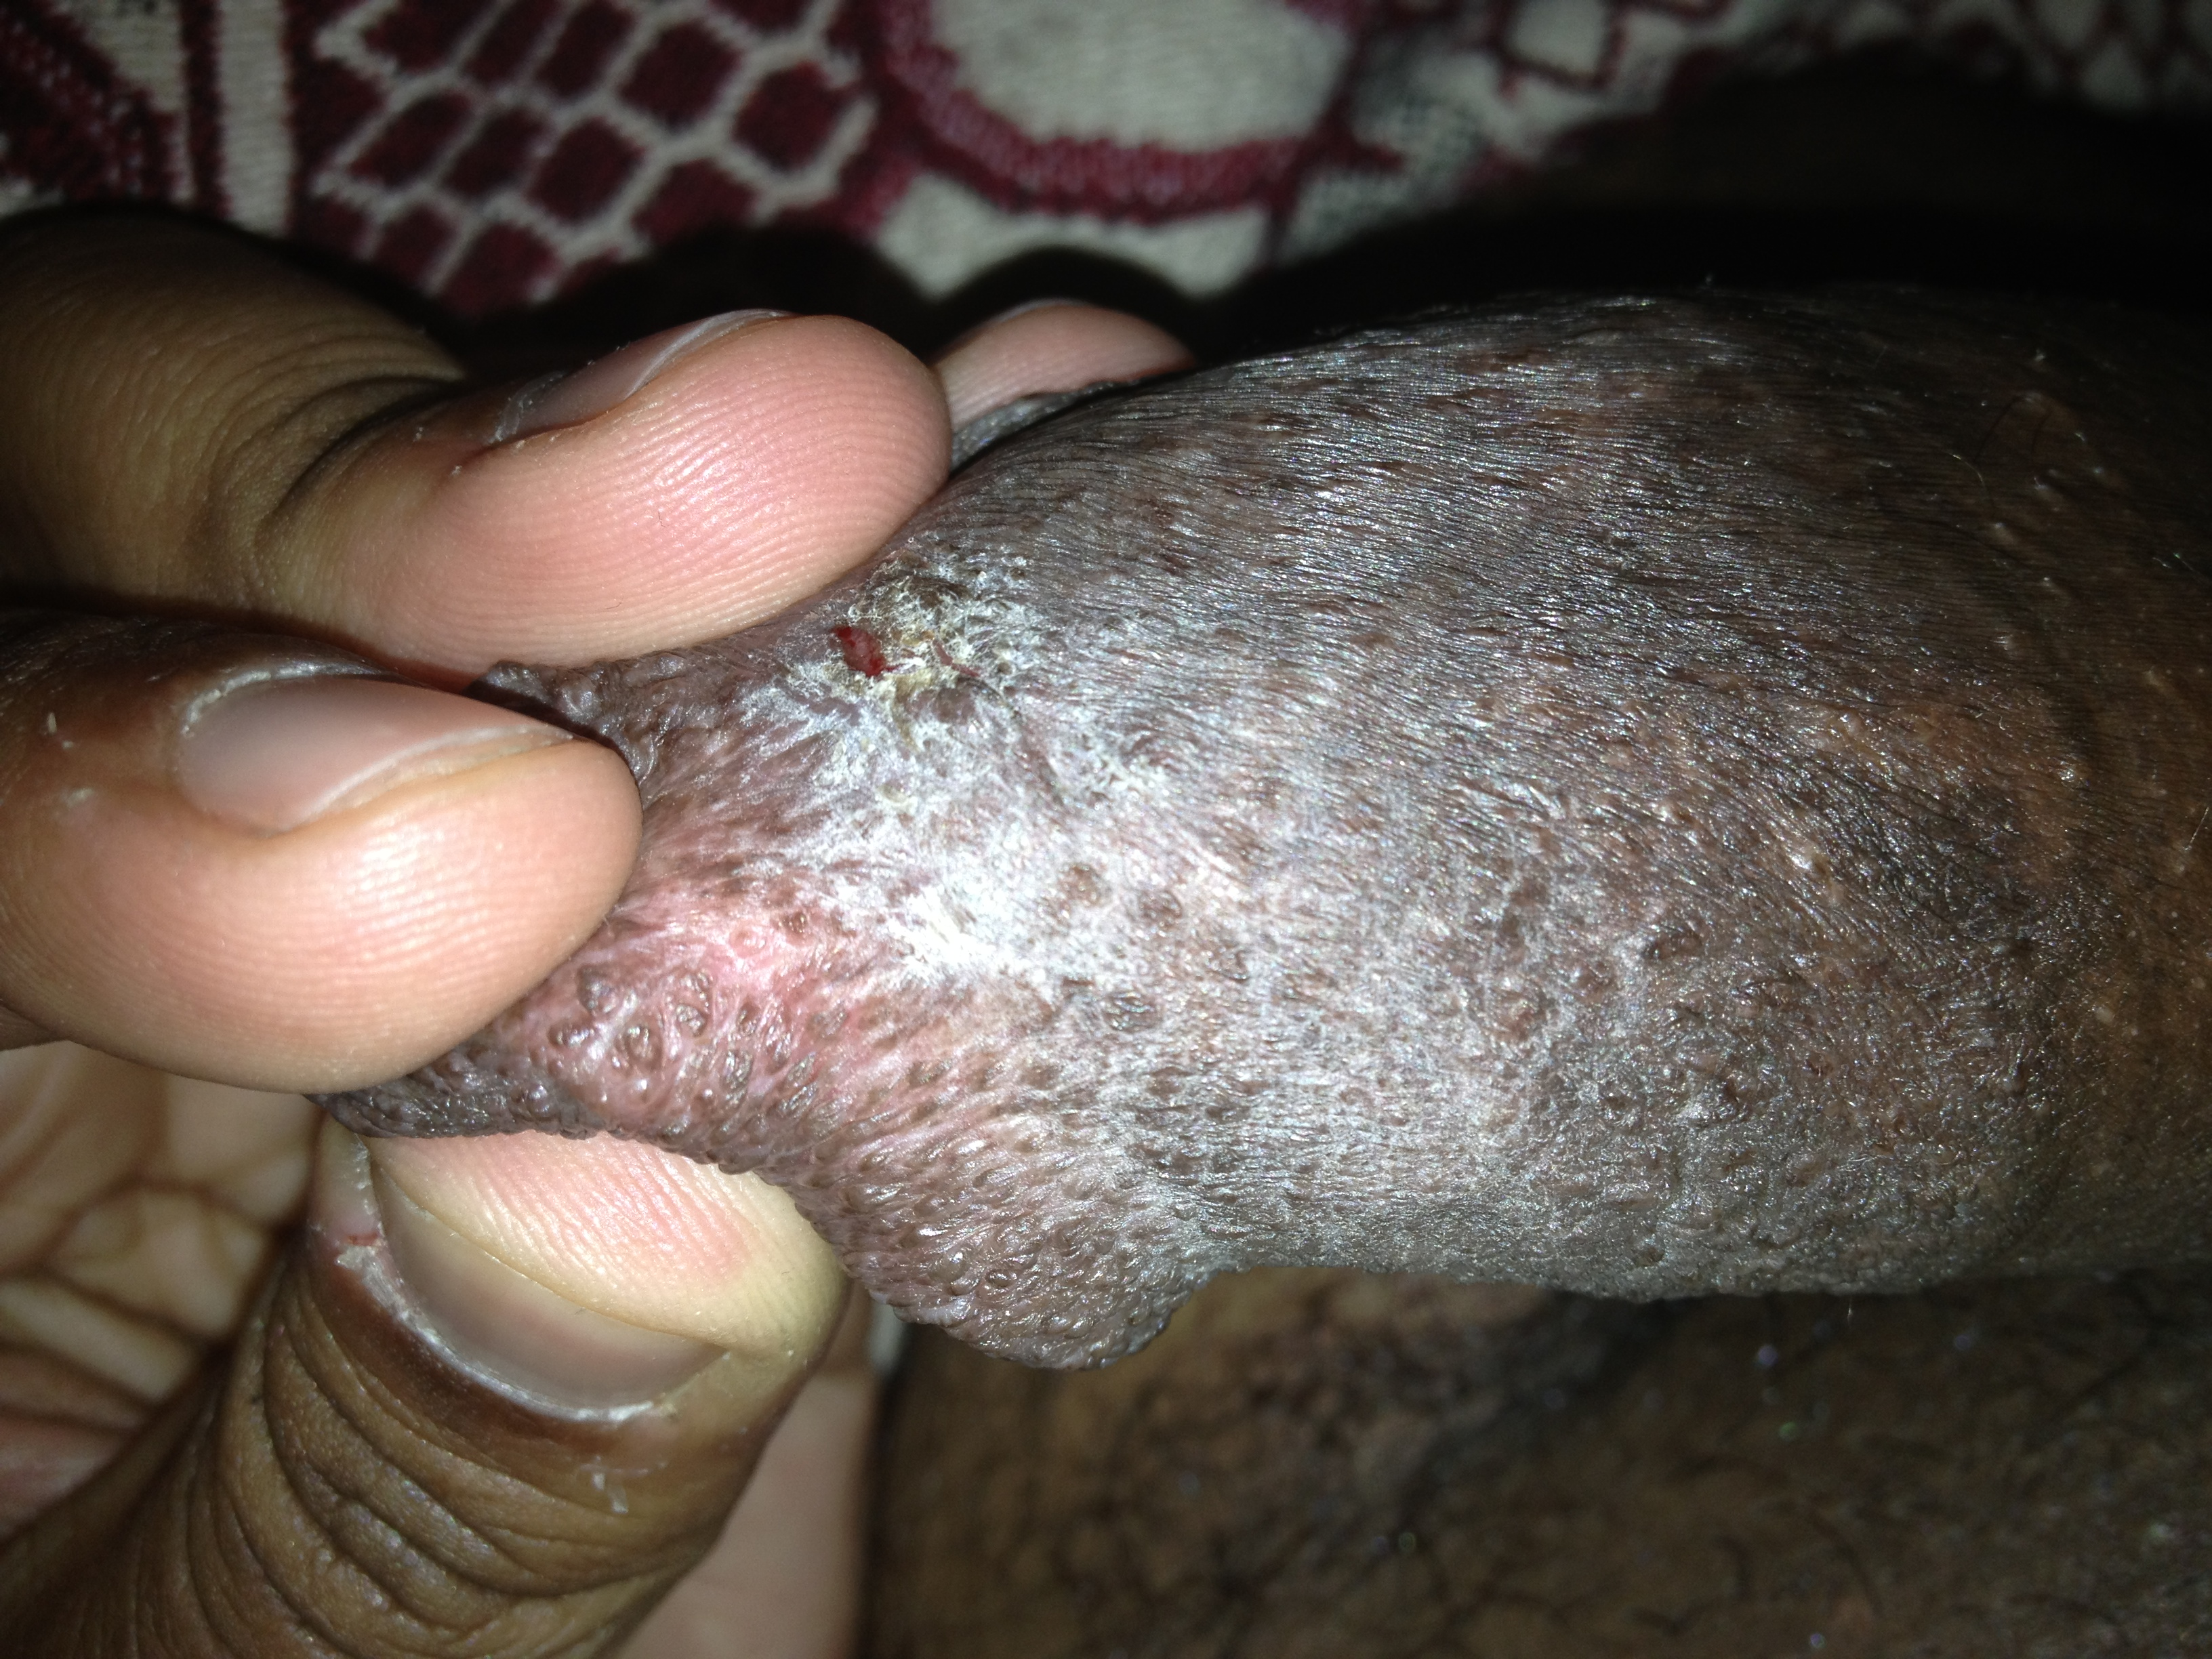 How to heal cut on tip of penis? - Urology - MedHelp